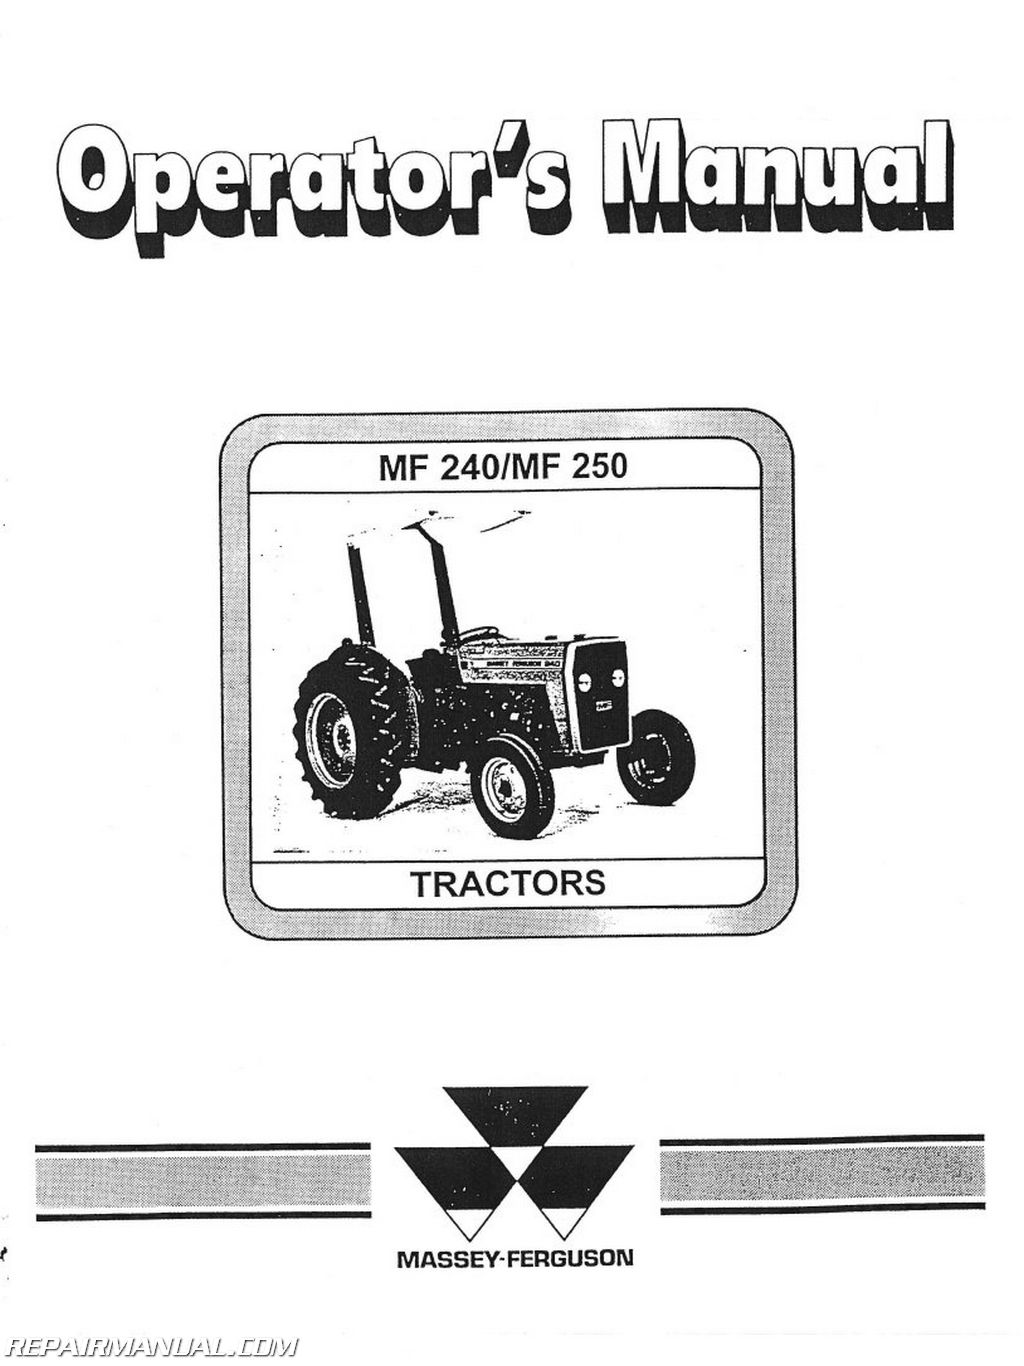 Mey Ferguson MF240 and 250 Operators Manual on john deere wiring diagram, ferguson tractor distributor, ferguson tractor starter diagram, ferguson 35 tractor schematics, 8n ford tractor hydraulics diagram, ferguson tractor bumper, ferguson tractor coil, ferguson tractor exhaust, massey ferguson 235 steering diagram, ferguson to 20 wiring-diagram, perkins diesel engine wiring diagram, massey ferguson 135 parts diagram, ferguson to30 wiring diagram, massey ferguson 135 tractor diagram, massey ferguson wiring diagram, massey ferguson 165 electrical diagram, massey ferguson ignition switch diagram, ferguson tractor tools, ferguson tractor generator, massey ferguson 231 parts diagram,